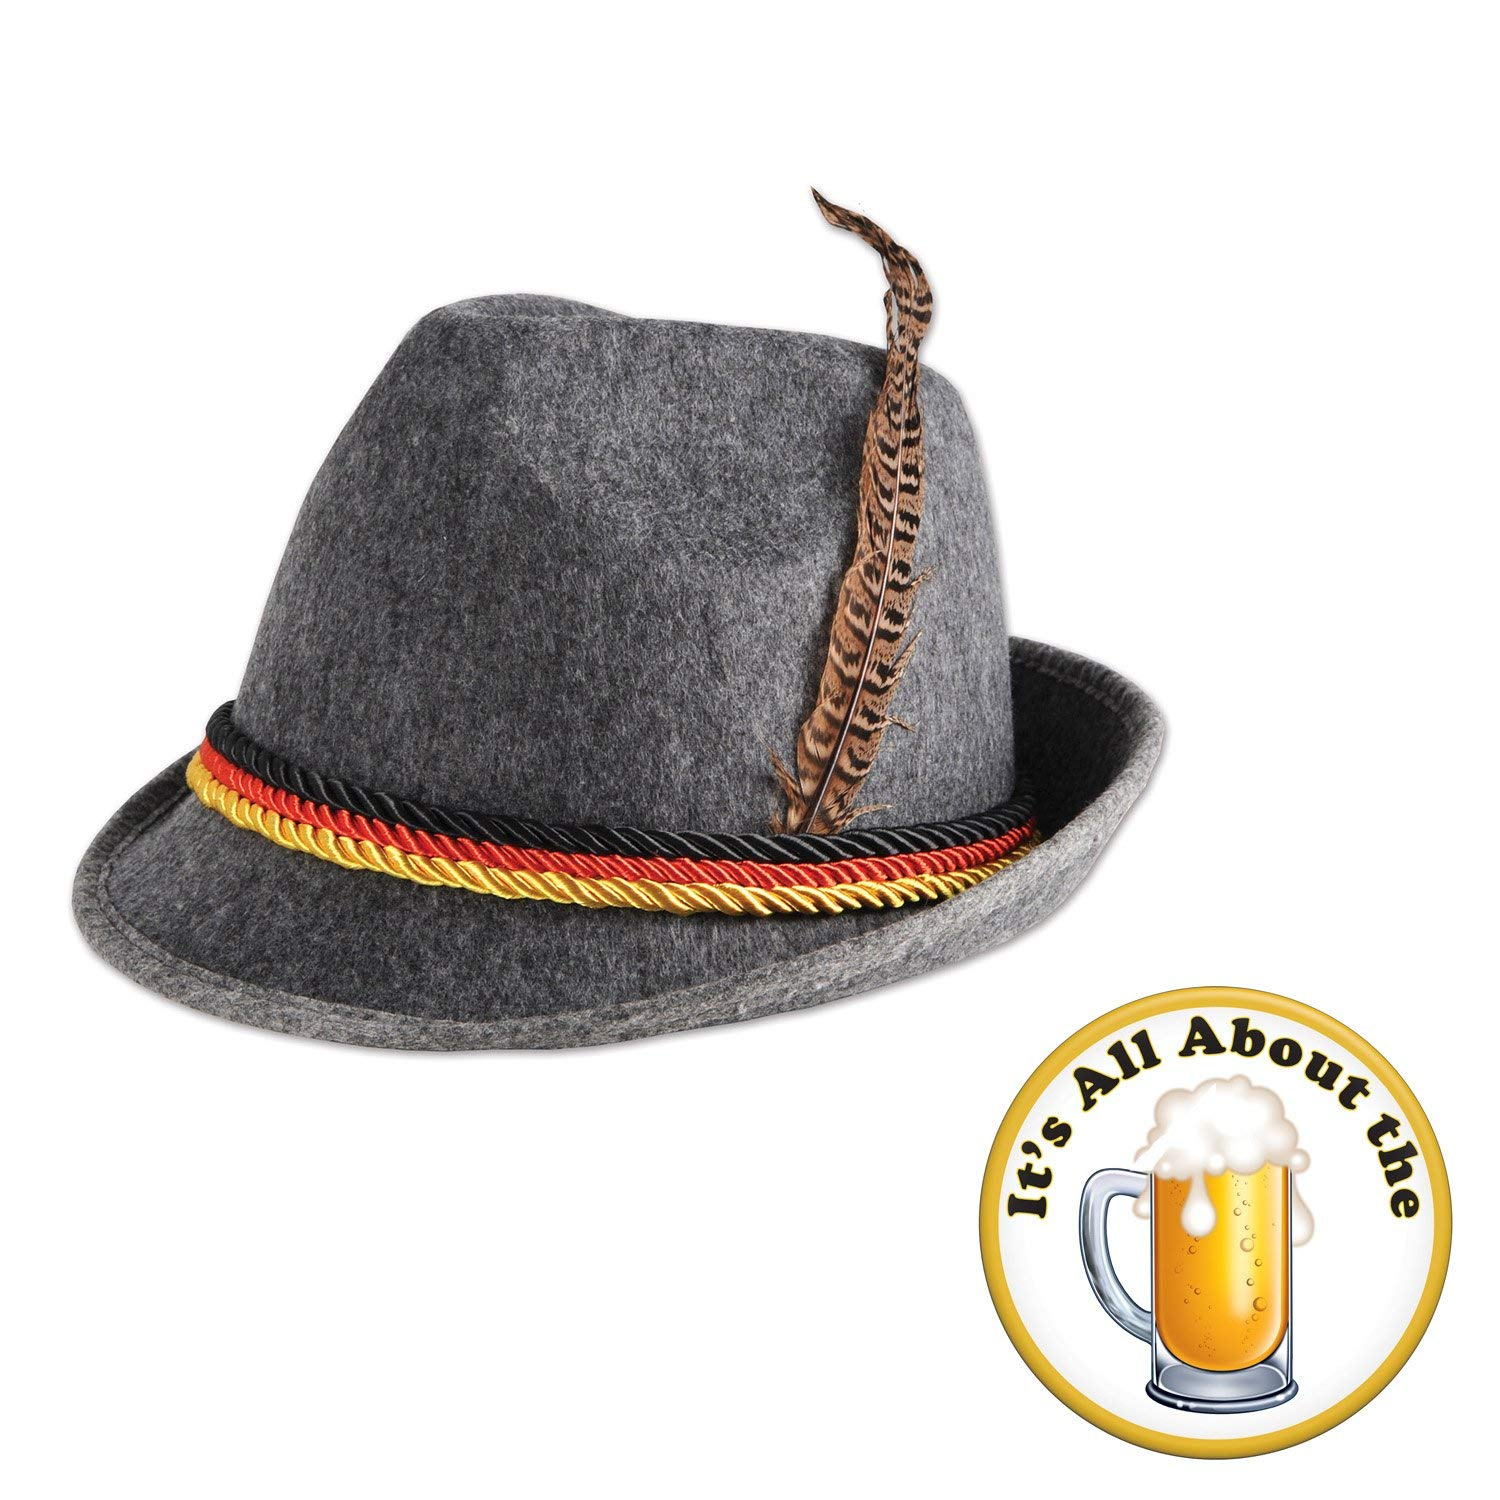 33fcb16726e Oktoberfest German Alpine Hat All About the Beer Button 2 Piece Bundle Set